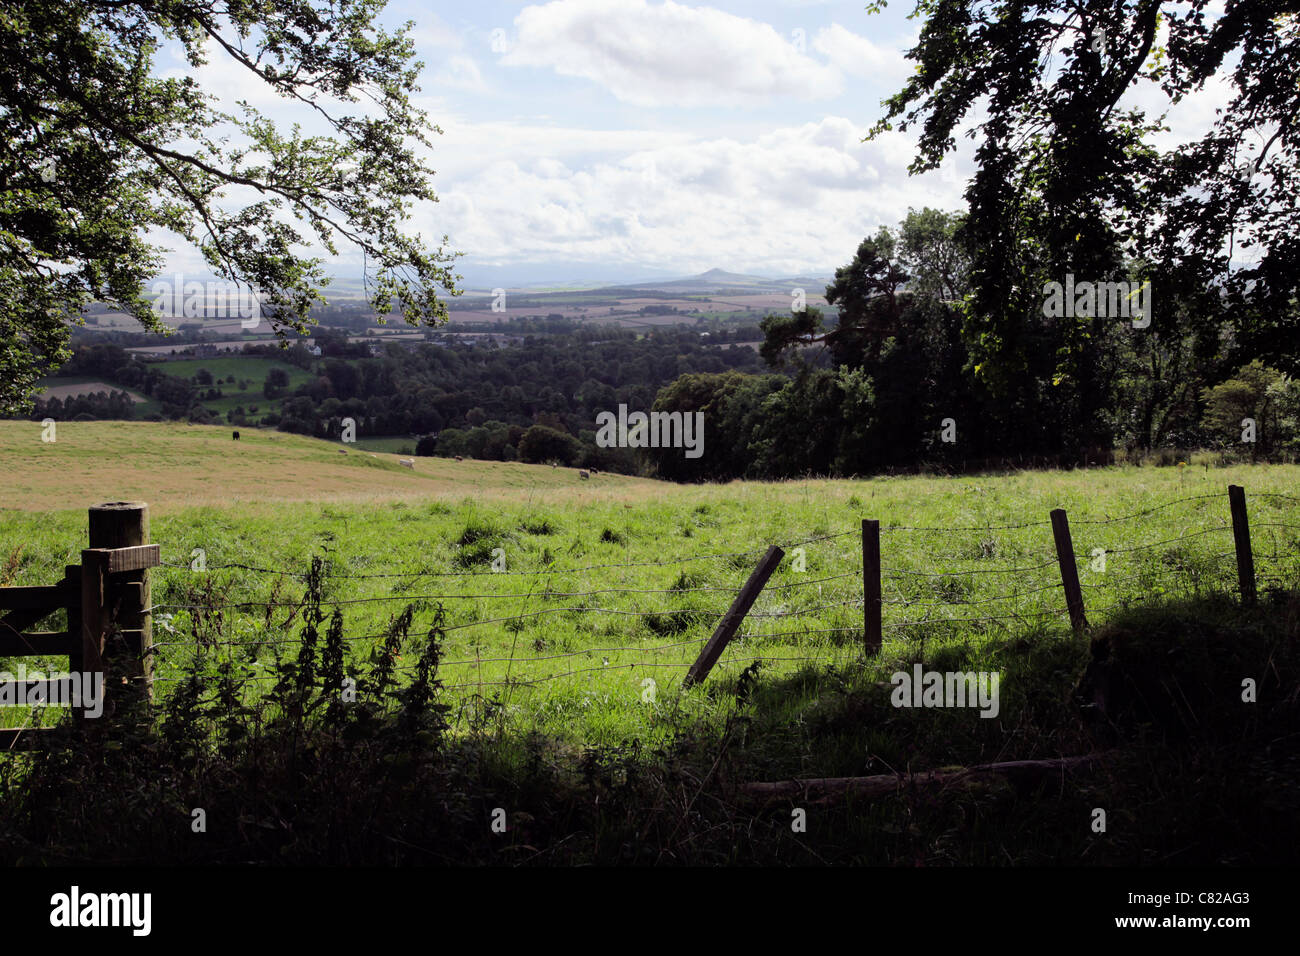 Countryside near Dryburgh in the Scottish Borders - Stock Image